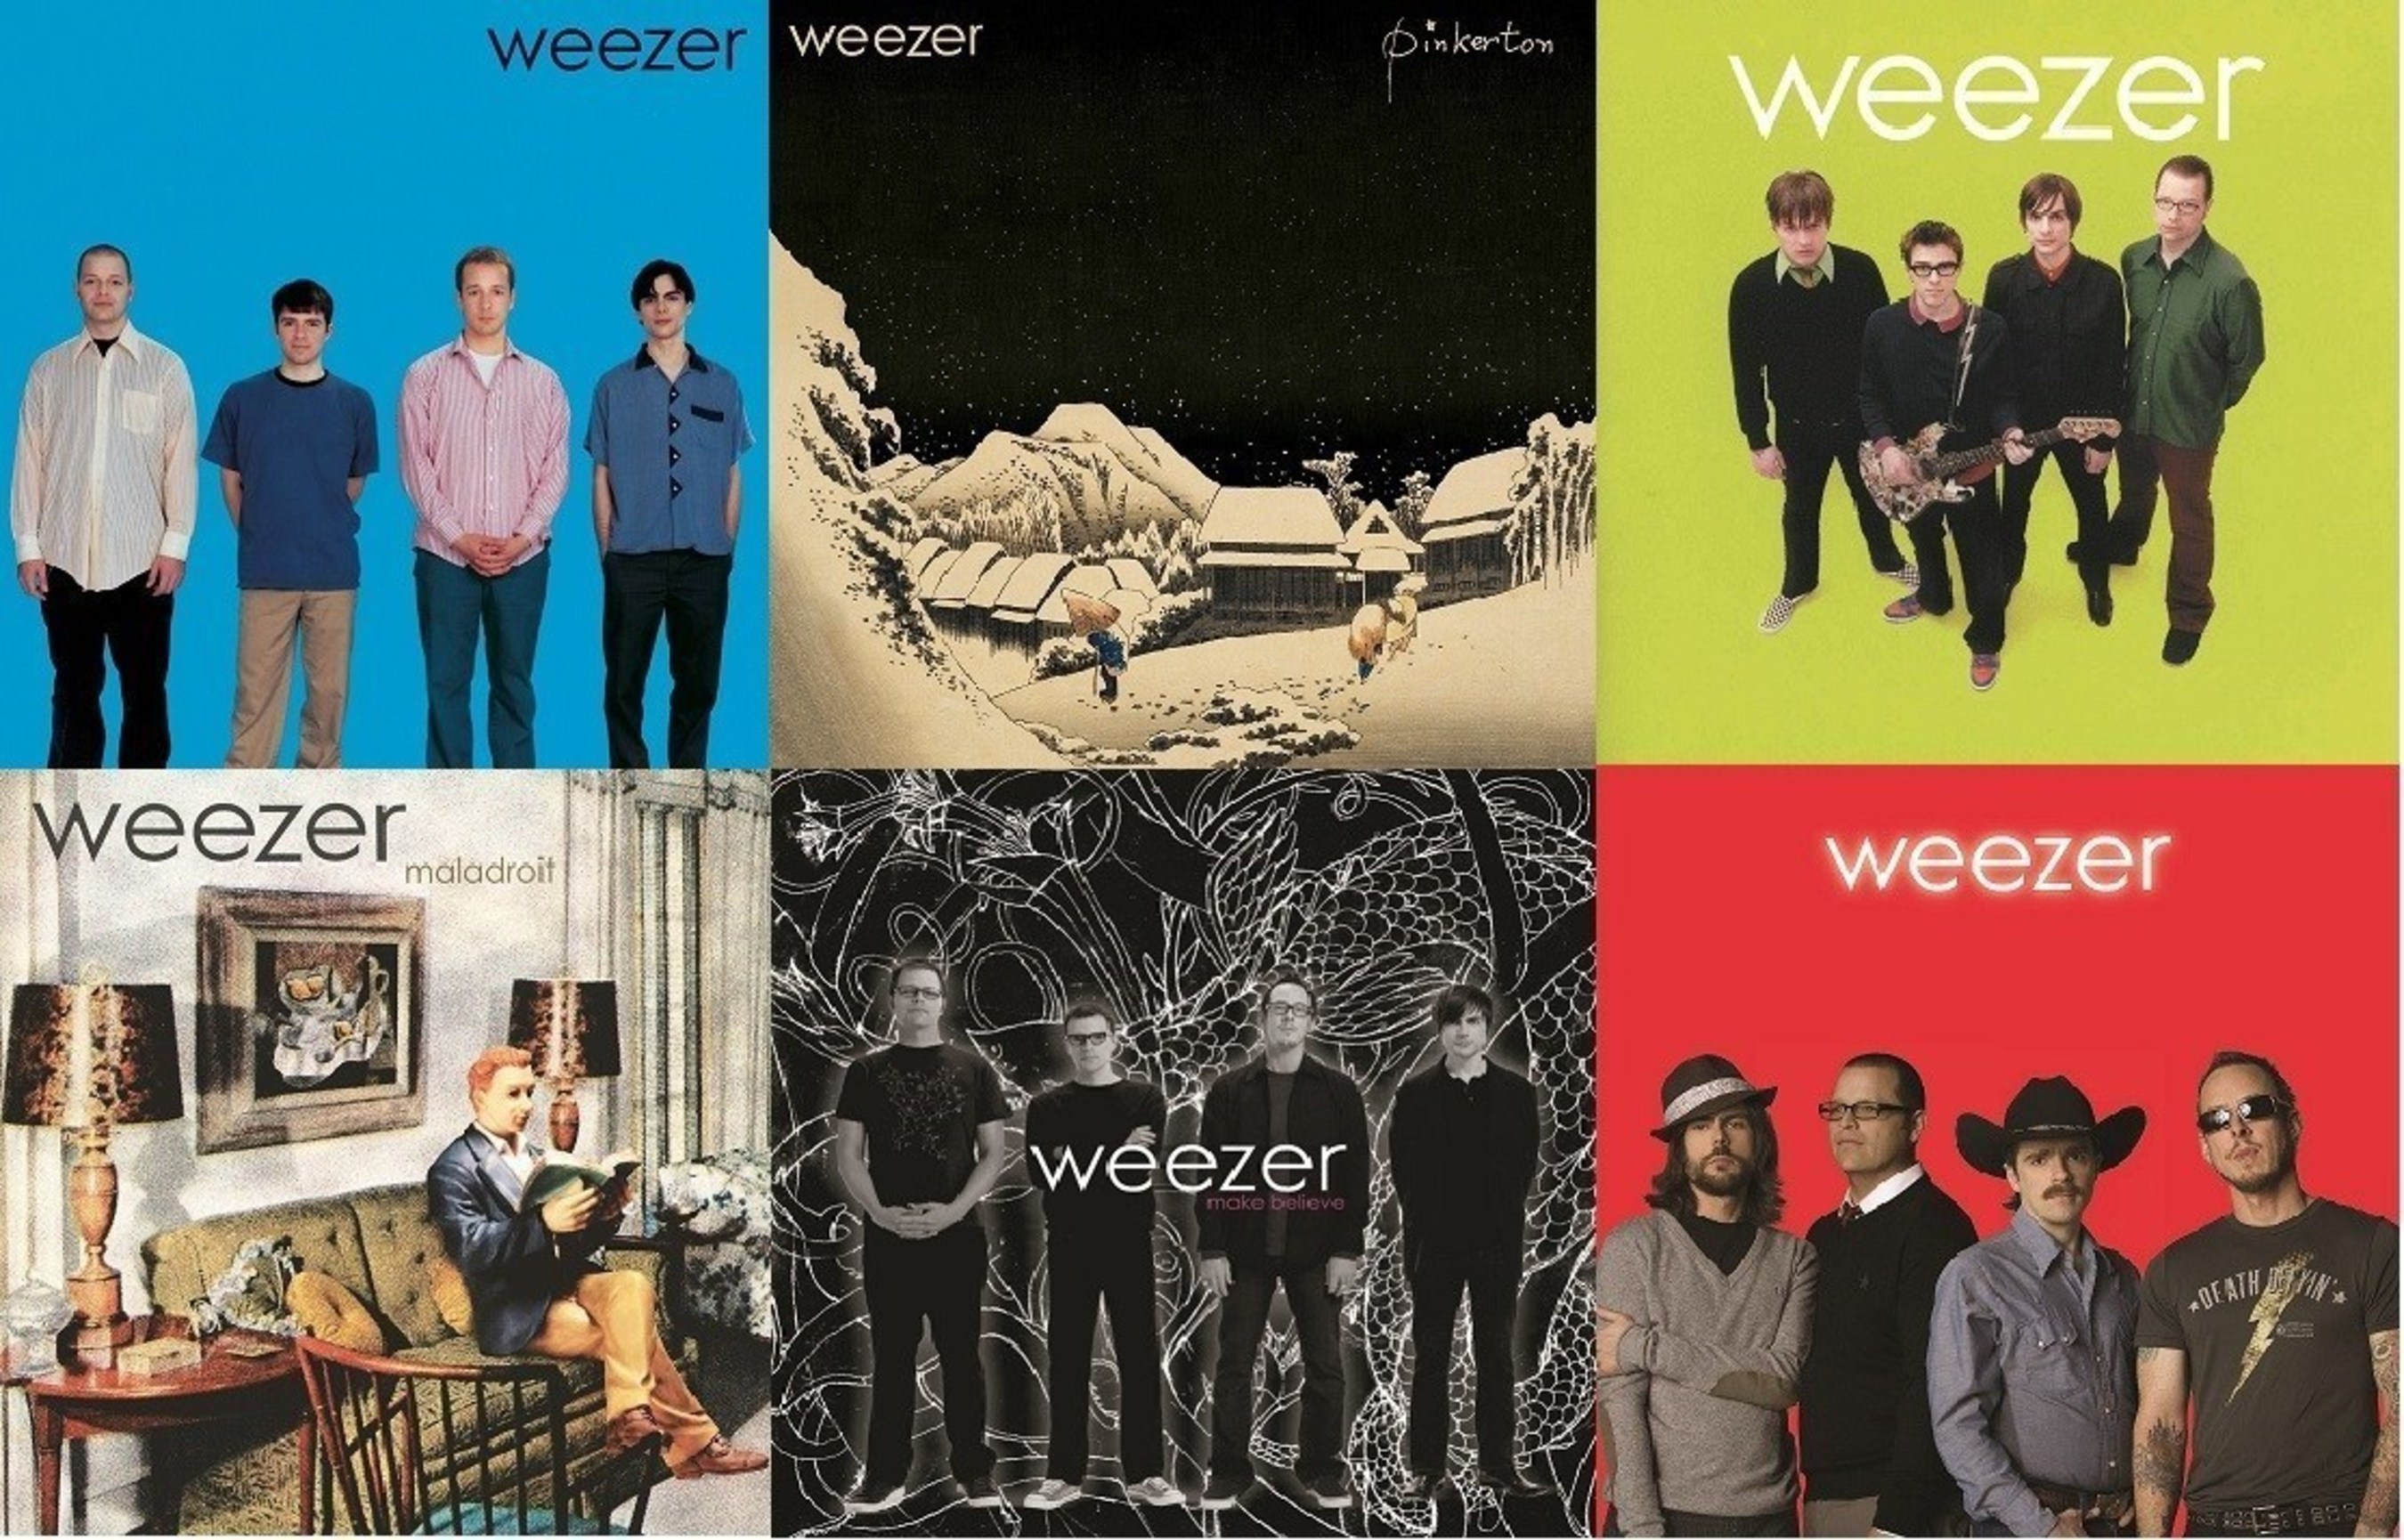 Geffen/UMe is reissuing Weezer's first six albums on standard 140-gram vinyl on October 28. The quartet's incredible run of Geffen Records releases - 1994's 'Weezer' (The Blue Album), 1996's 'Pinkerton,' 2001's 'Weezer' (The Green Album), 2002's 'Maladroit,' 2005's 'Make Believe' and 2008's 'Weezer' (The Red Album) - helped redefine the genre, mixing guitar hooks with a sense of geek-smart humor that radiated into the band's popular live act and multitude of cutting-edge videos and visuals.